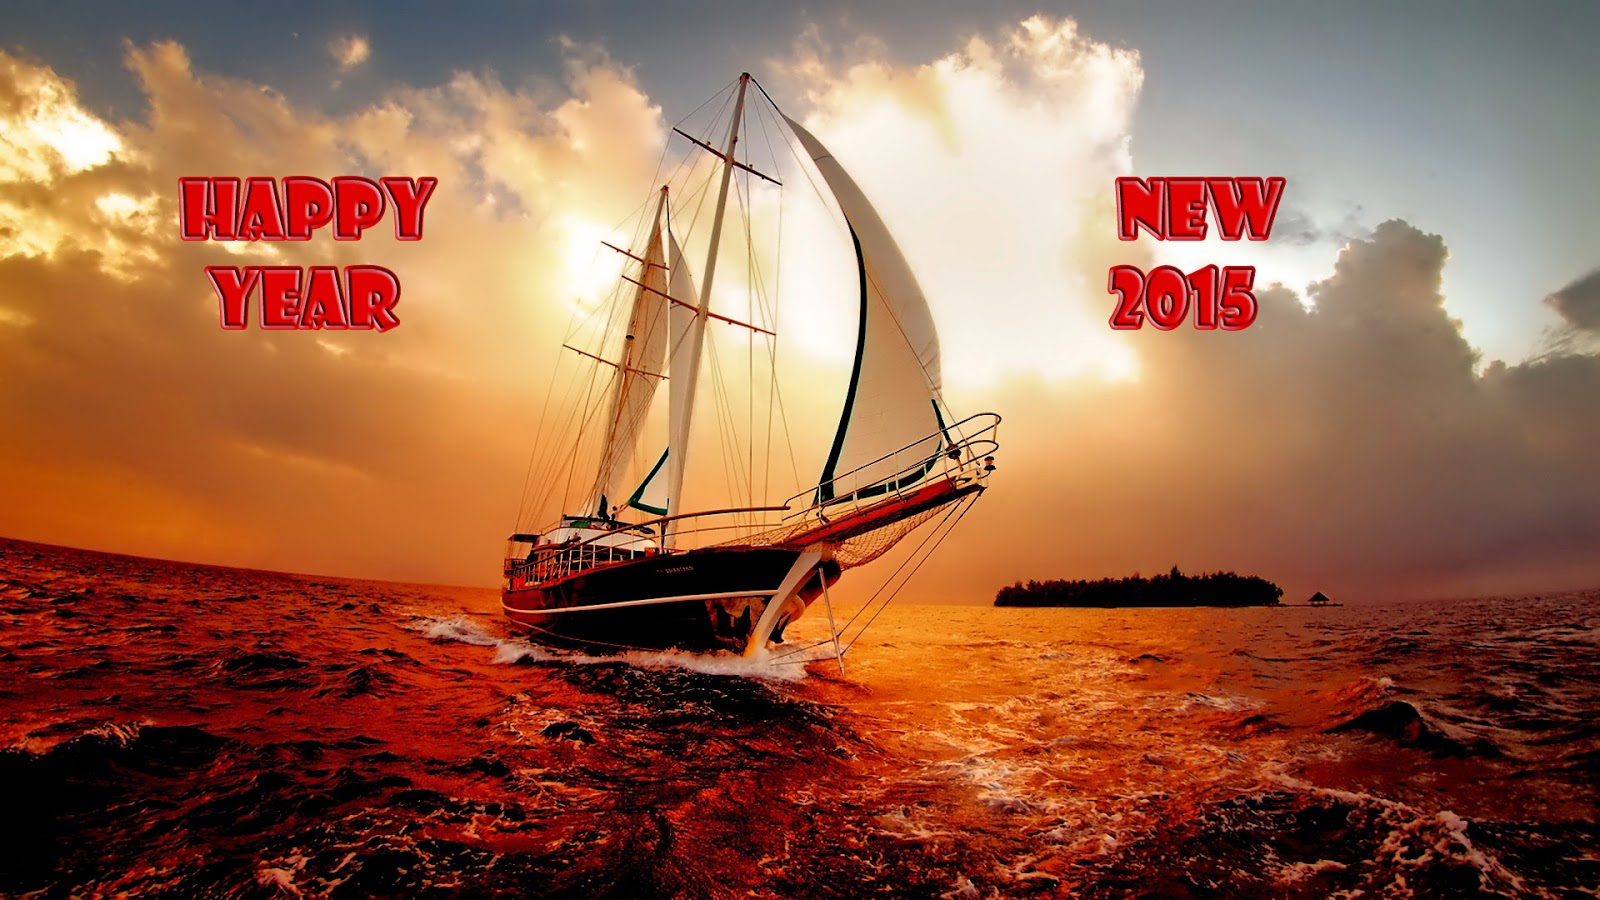 Greeting Happy New Year 2015 Images – Download Great Pictures